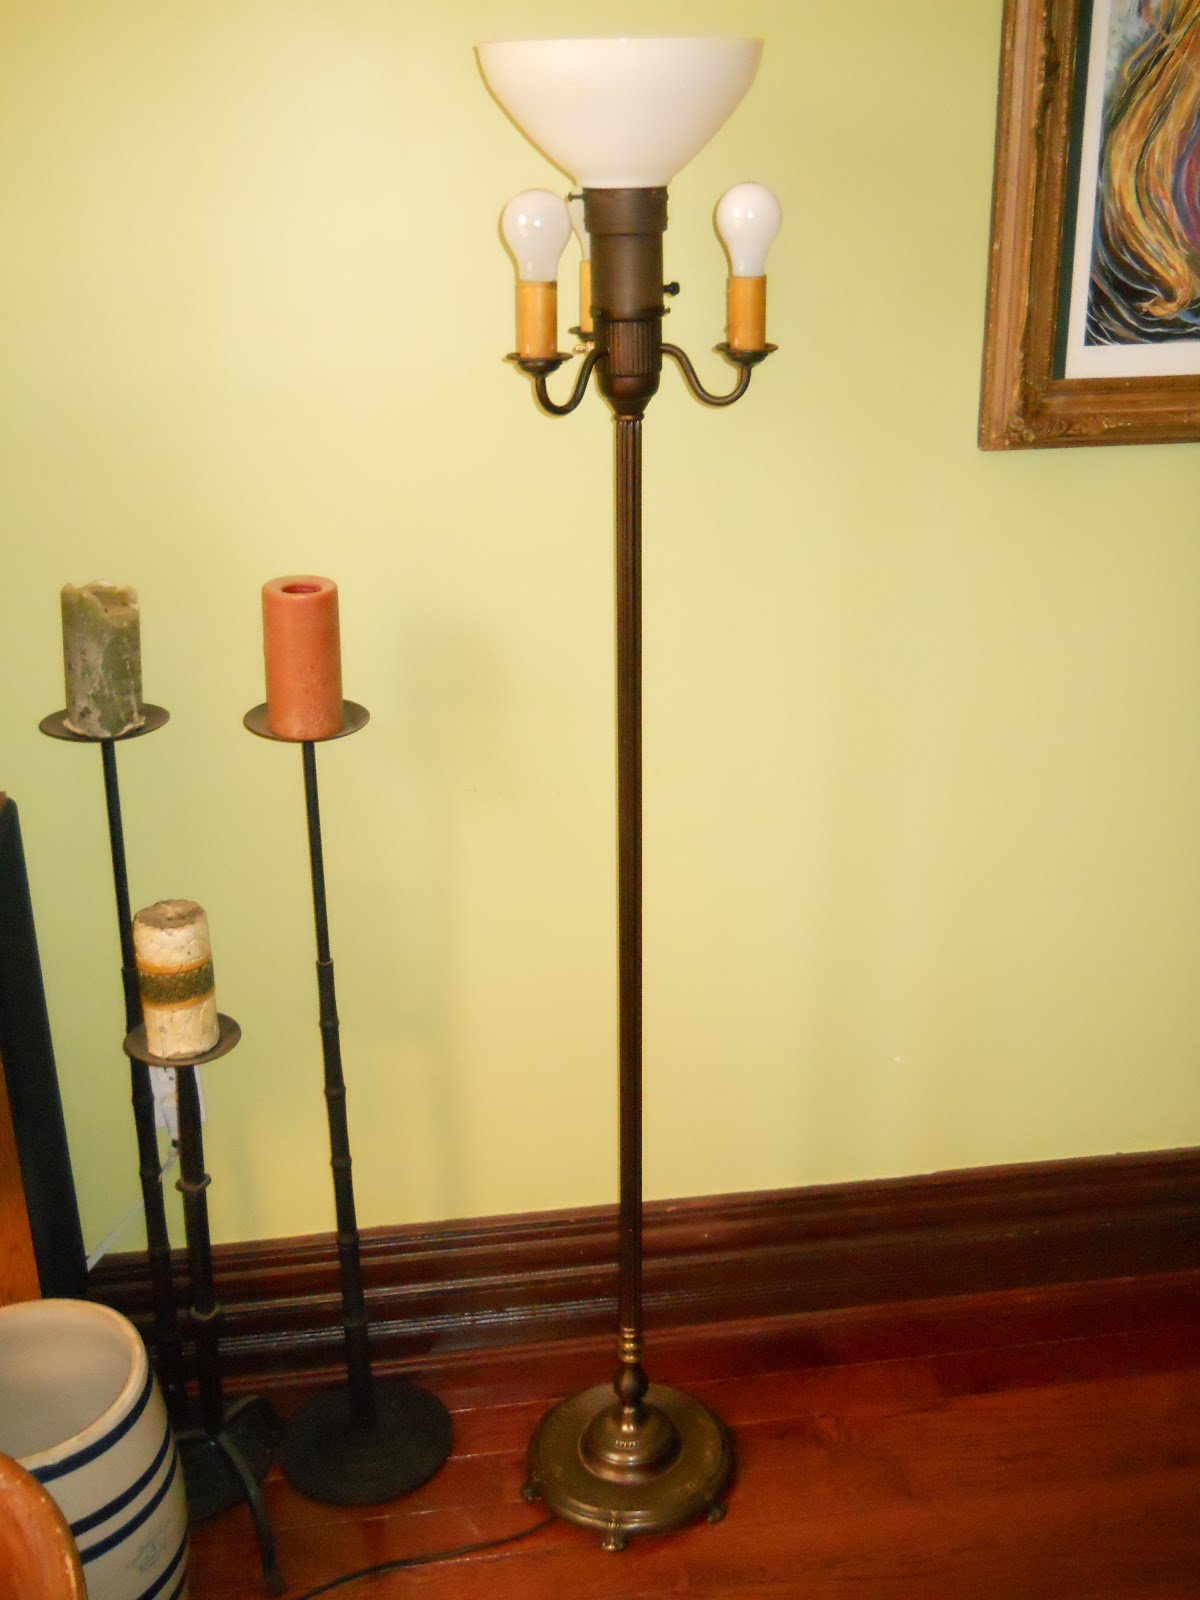 Superb Church Key Vintage Pairpoint Dolphin Lamp Antique Floor Lamp Wiring Cloud Cosmuggs Outletorg